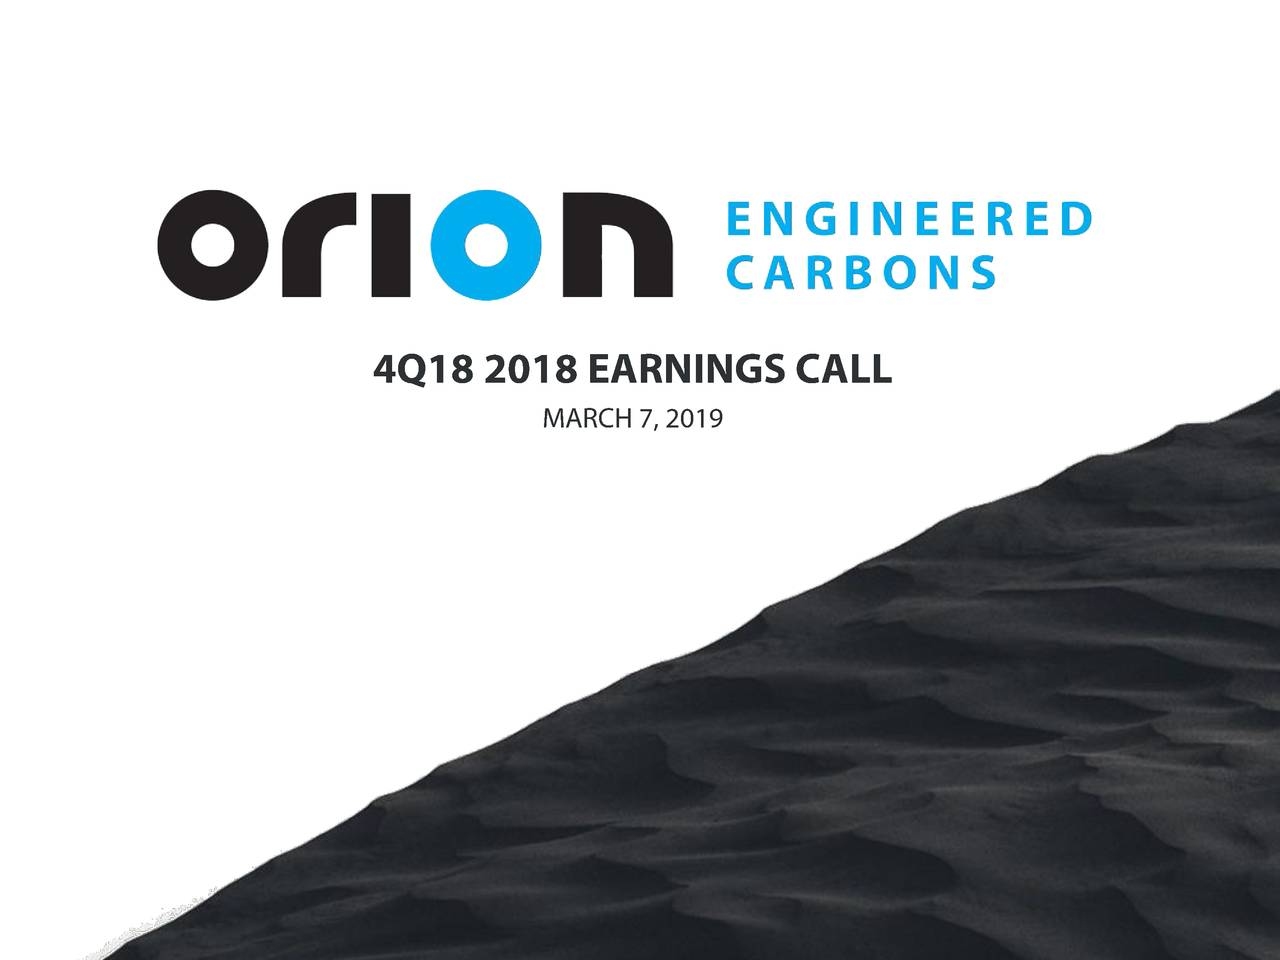 Orion engineered carbons sarl ipo